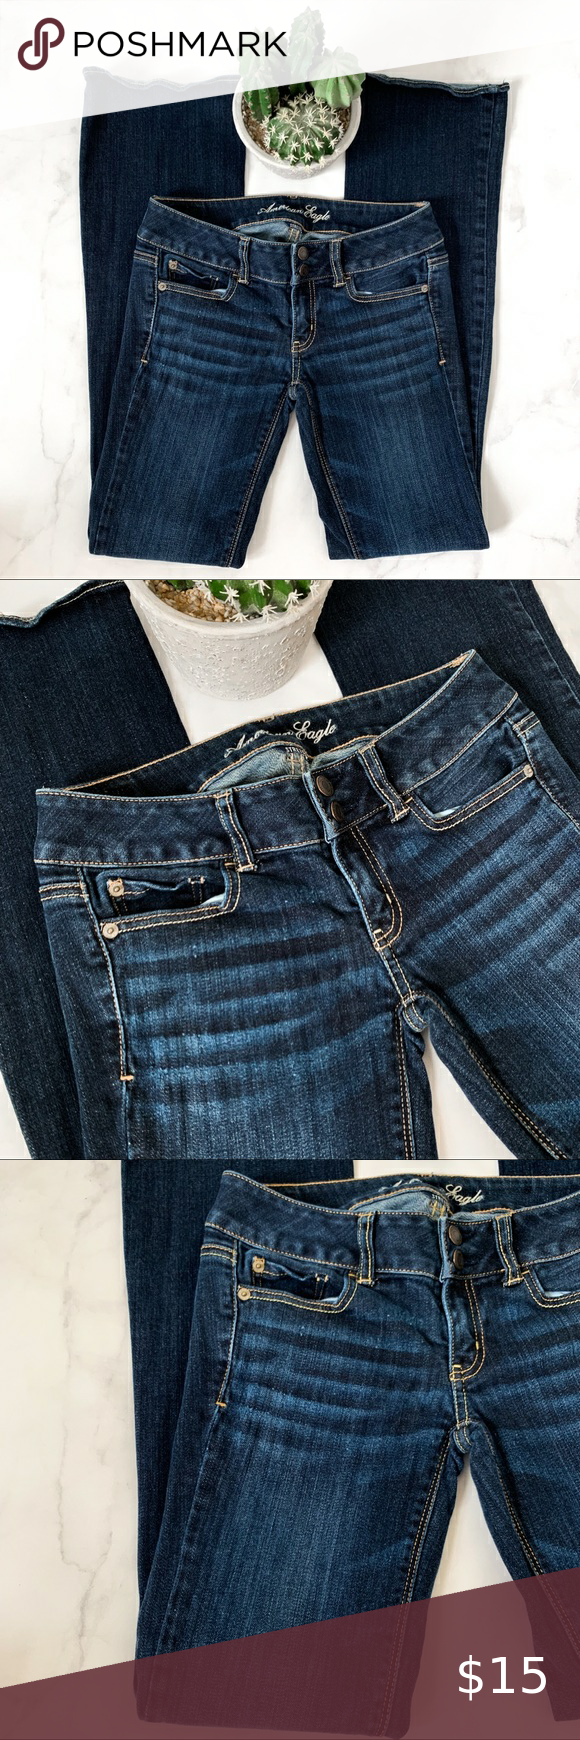 2 Long American Eagle Artist Low Rise Jeans in 2020